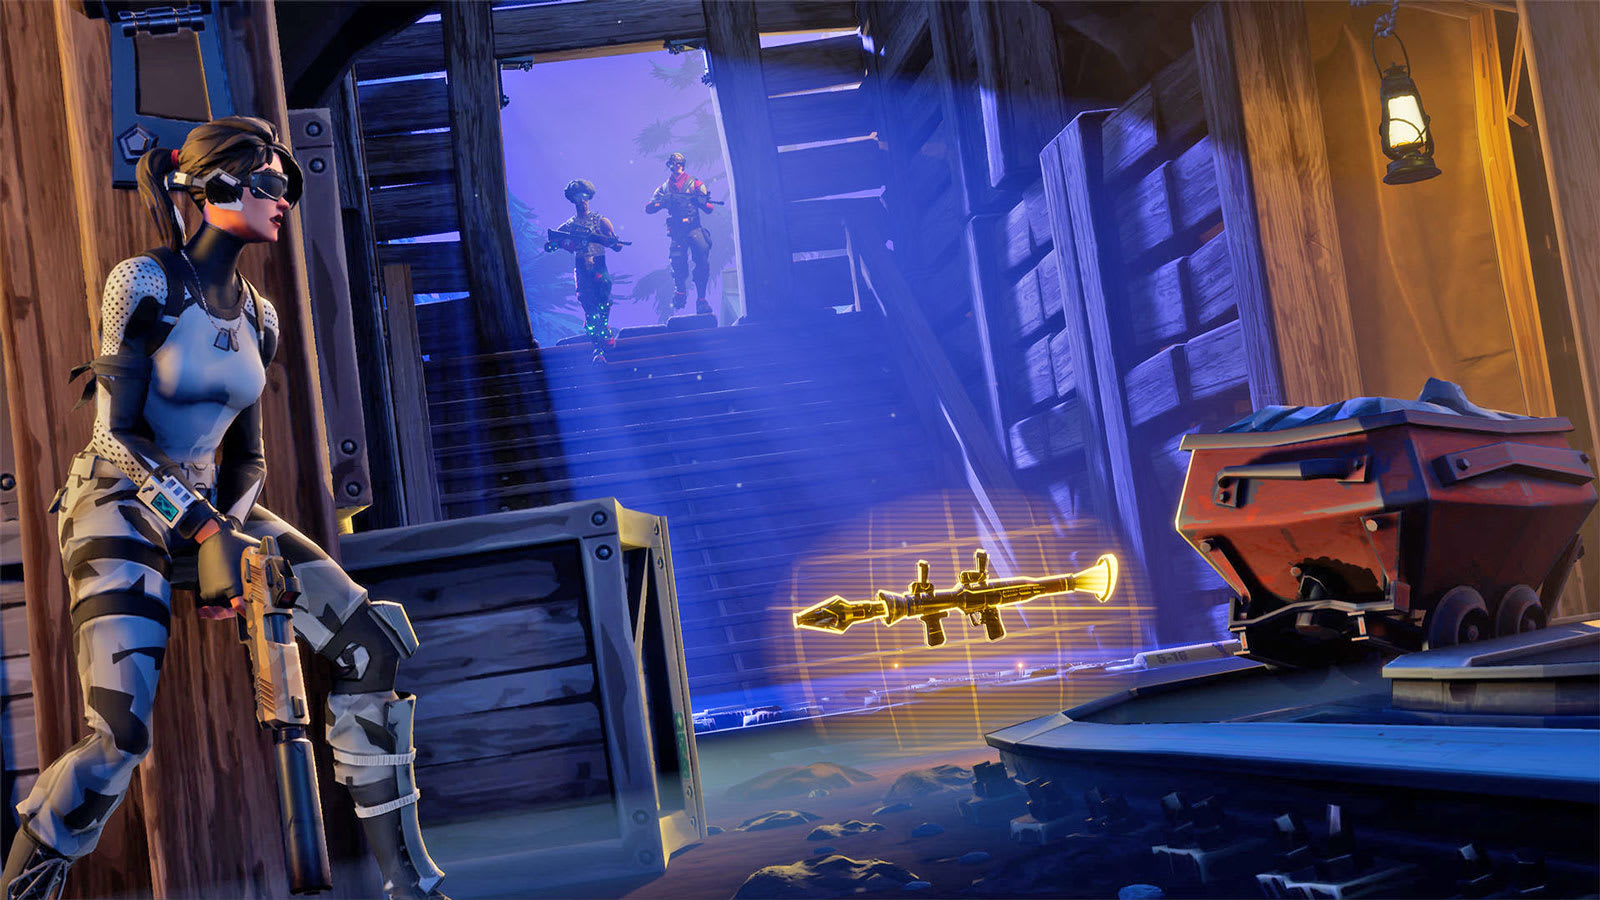 Fortnite' could partially lose the one thing that makes it unique